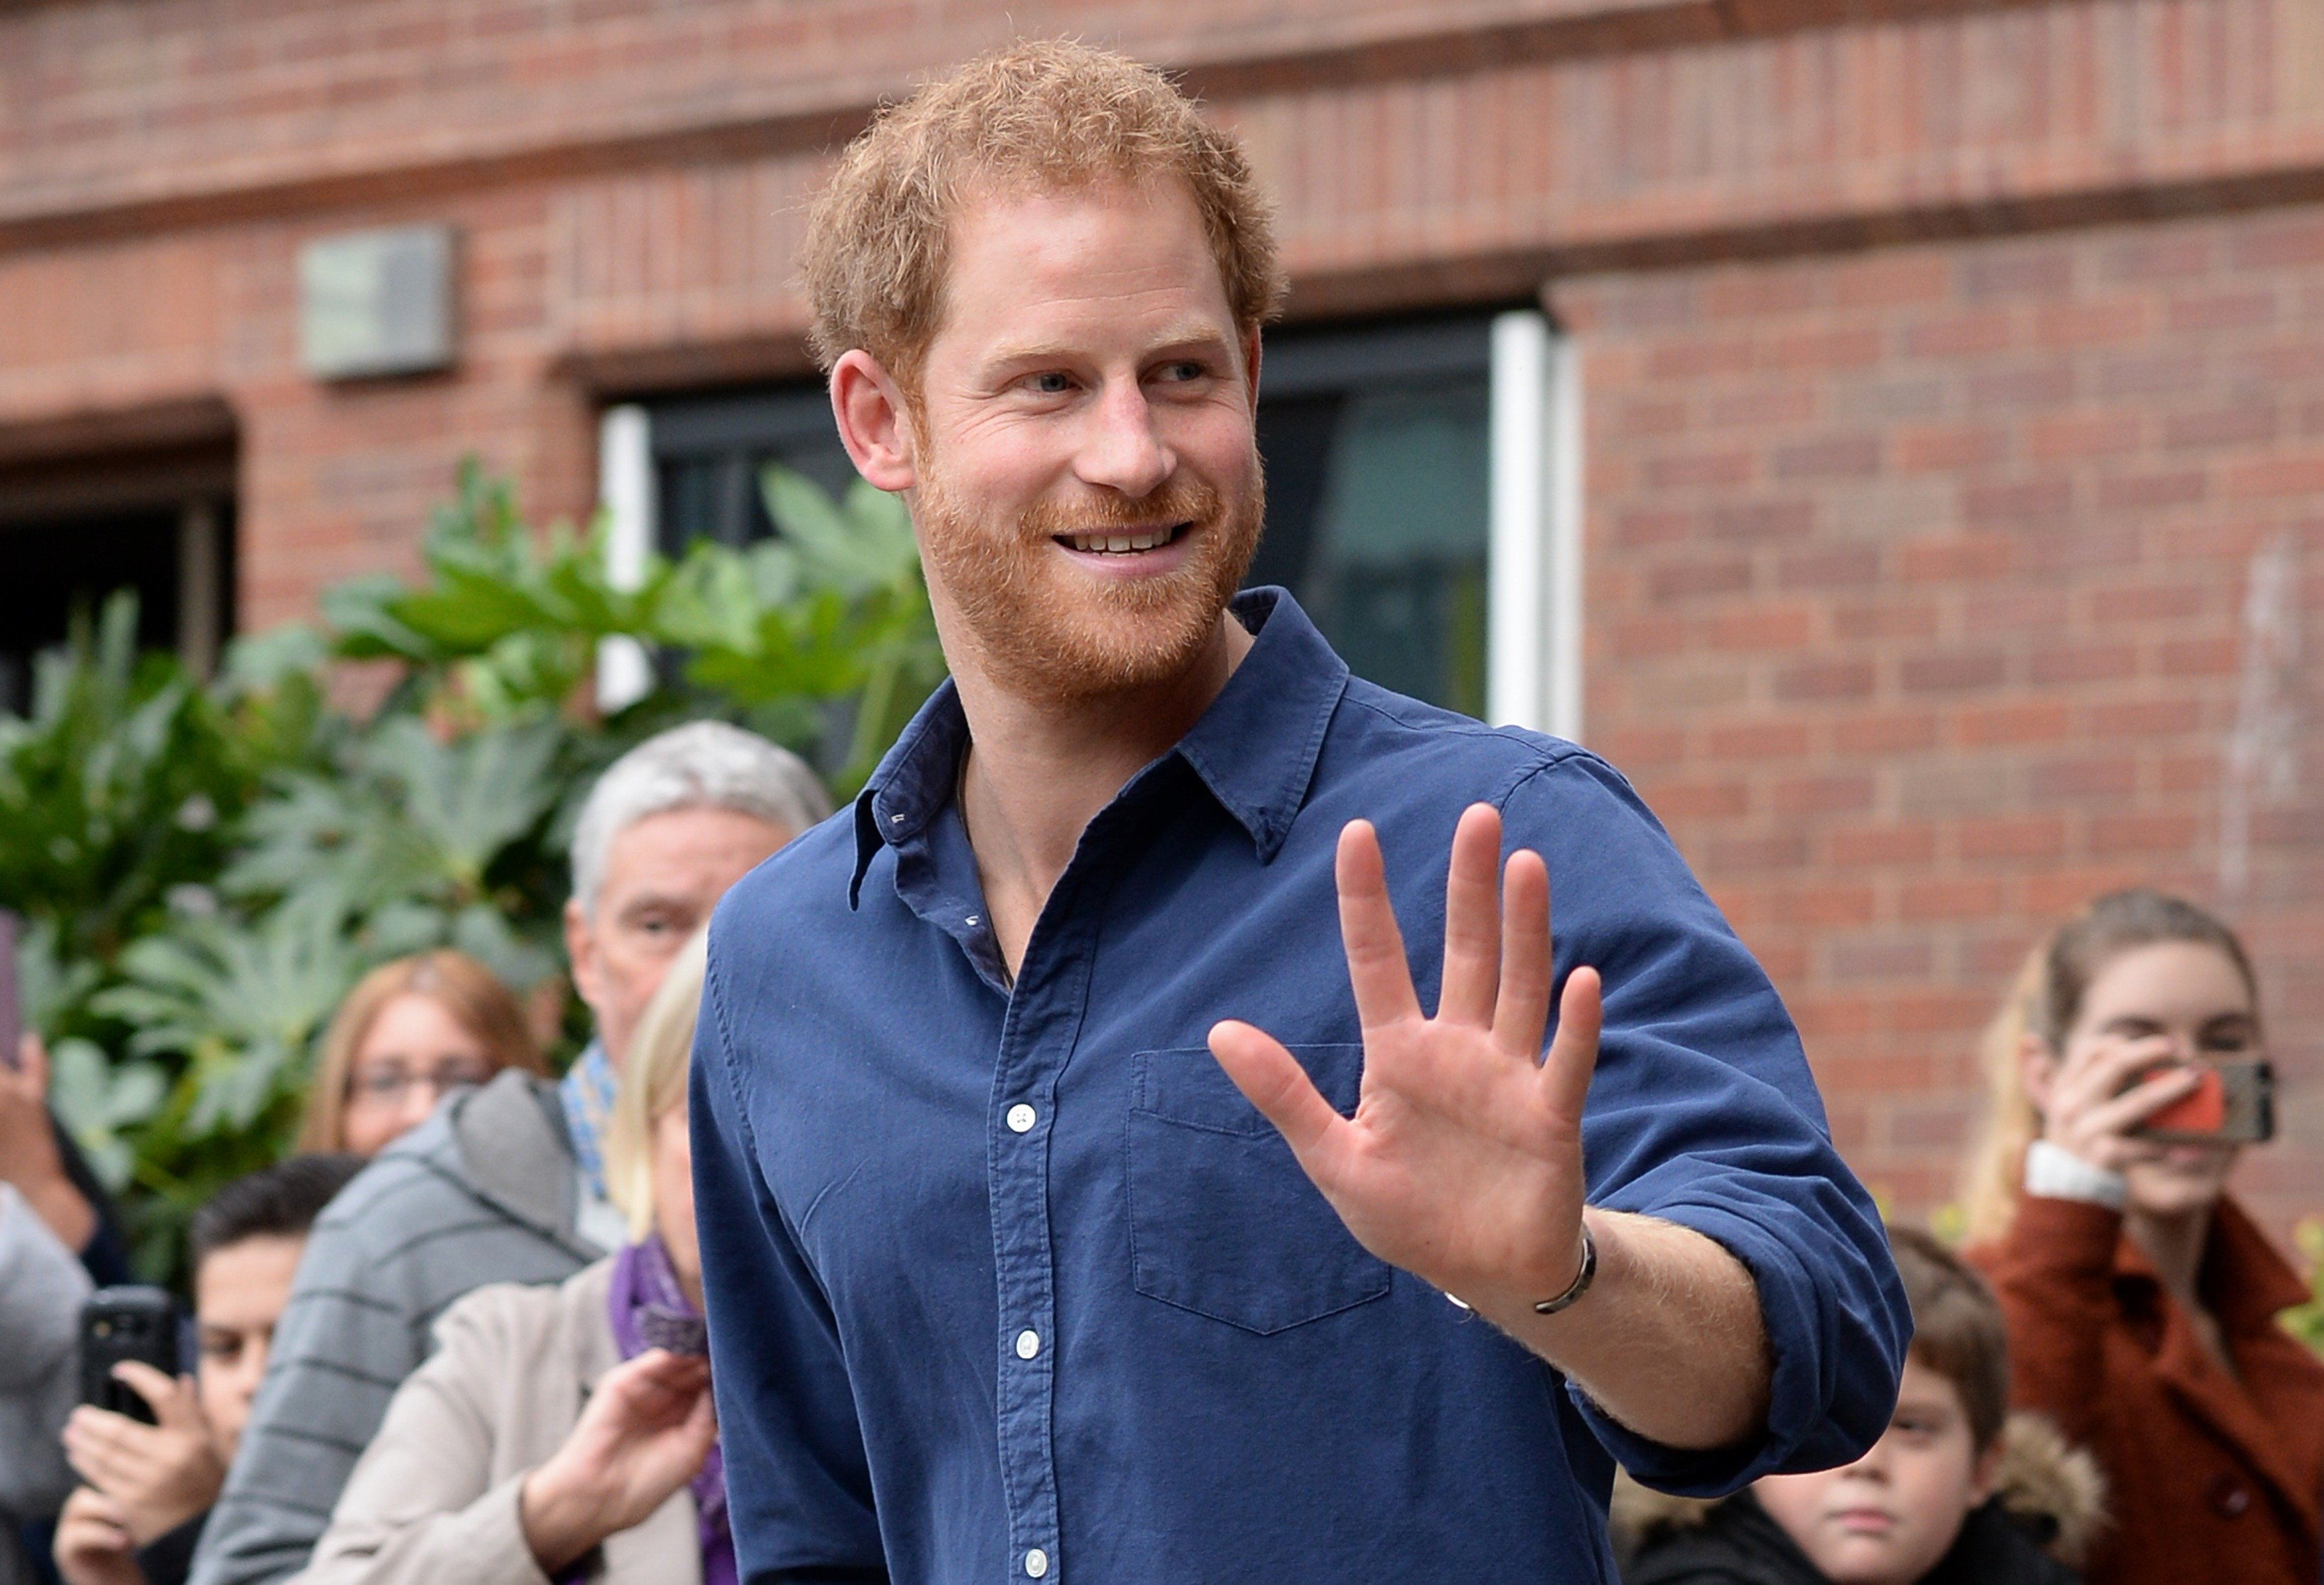 Prince Harry pictured leaving the Nottingham's new Central Police Station, 2016, Nottingham, England.   Photo: Getty Images